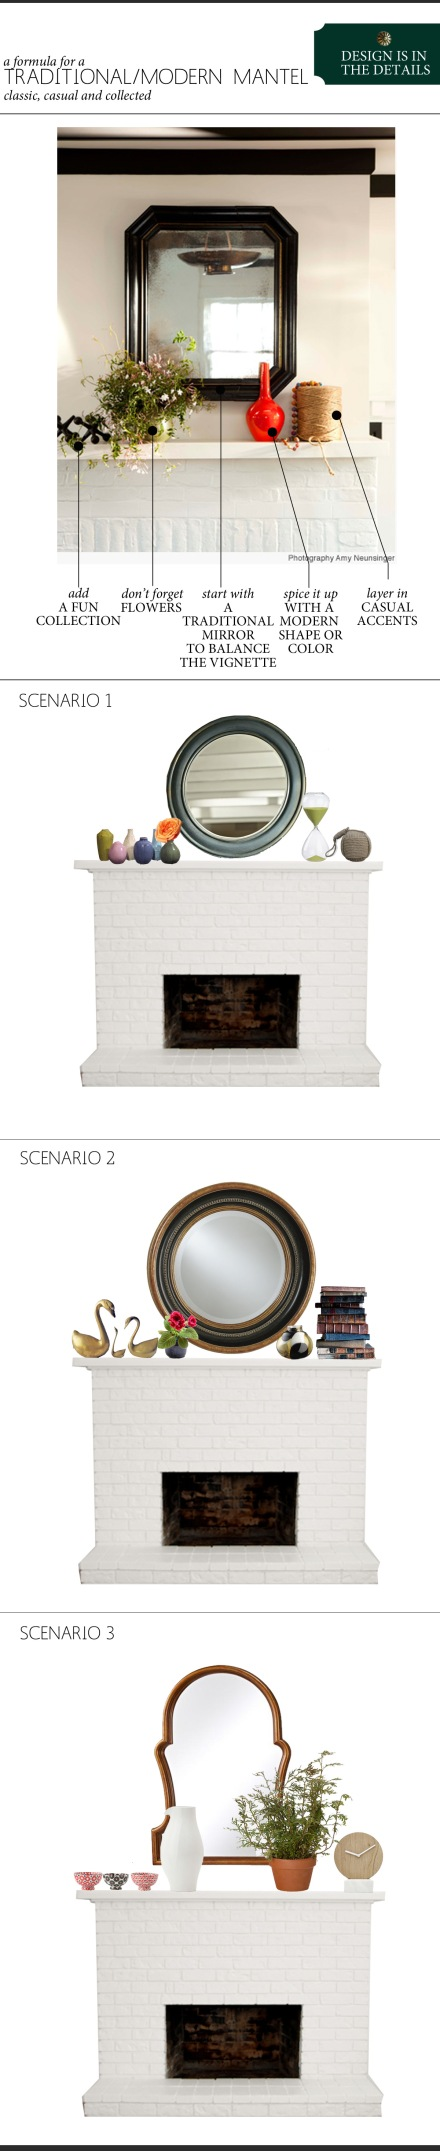 a-traditional-modern-mixed-mantel copy